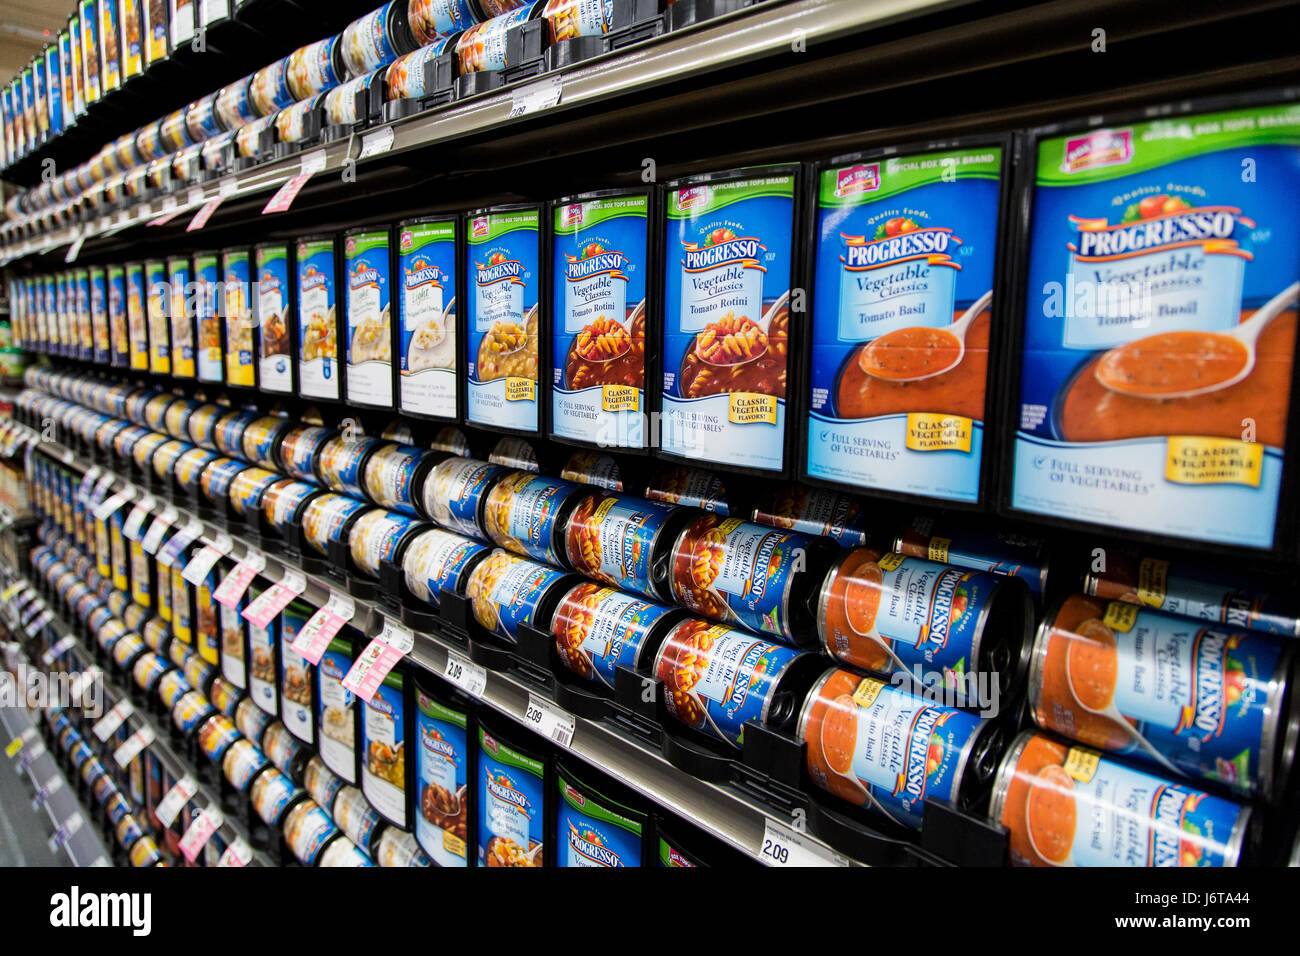 rows of Progresso brand soup cans in a display at a grocery store - Stock Image